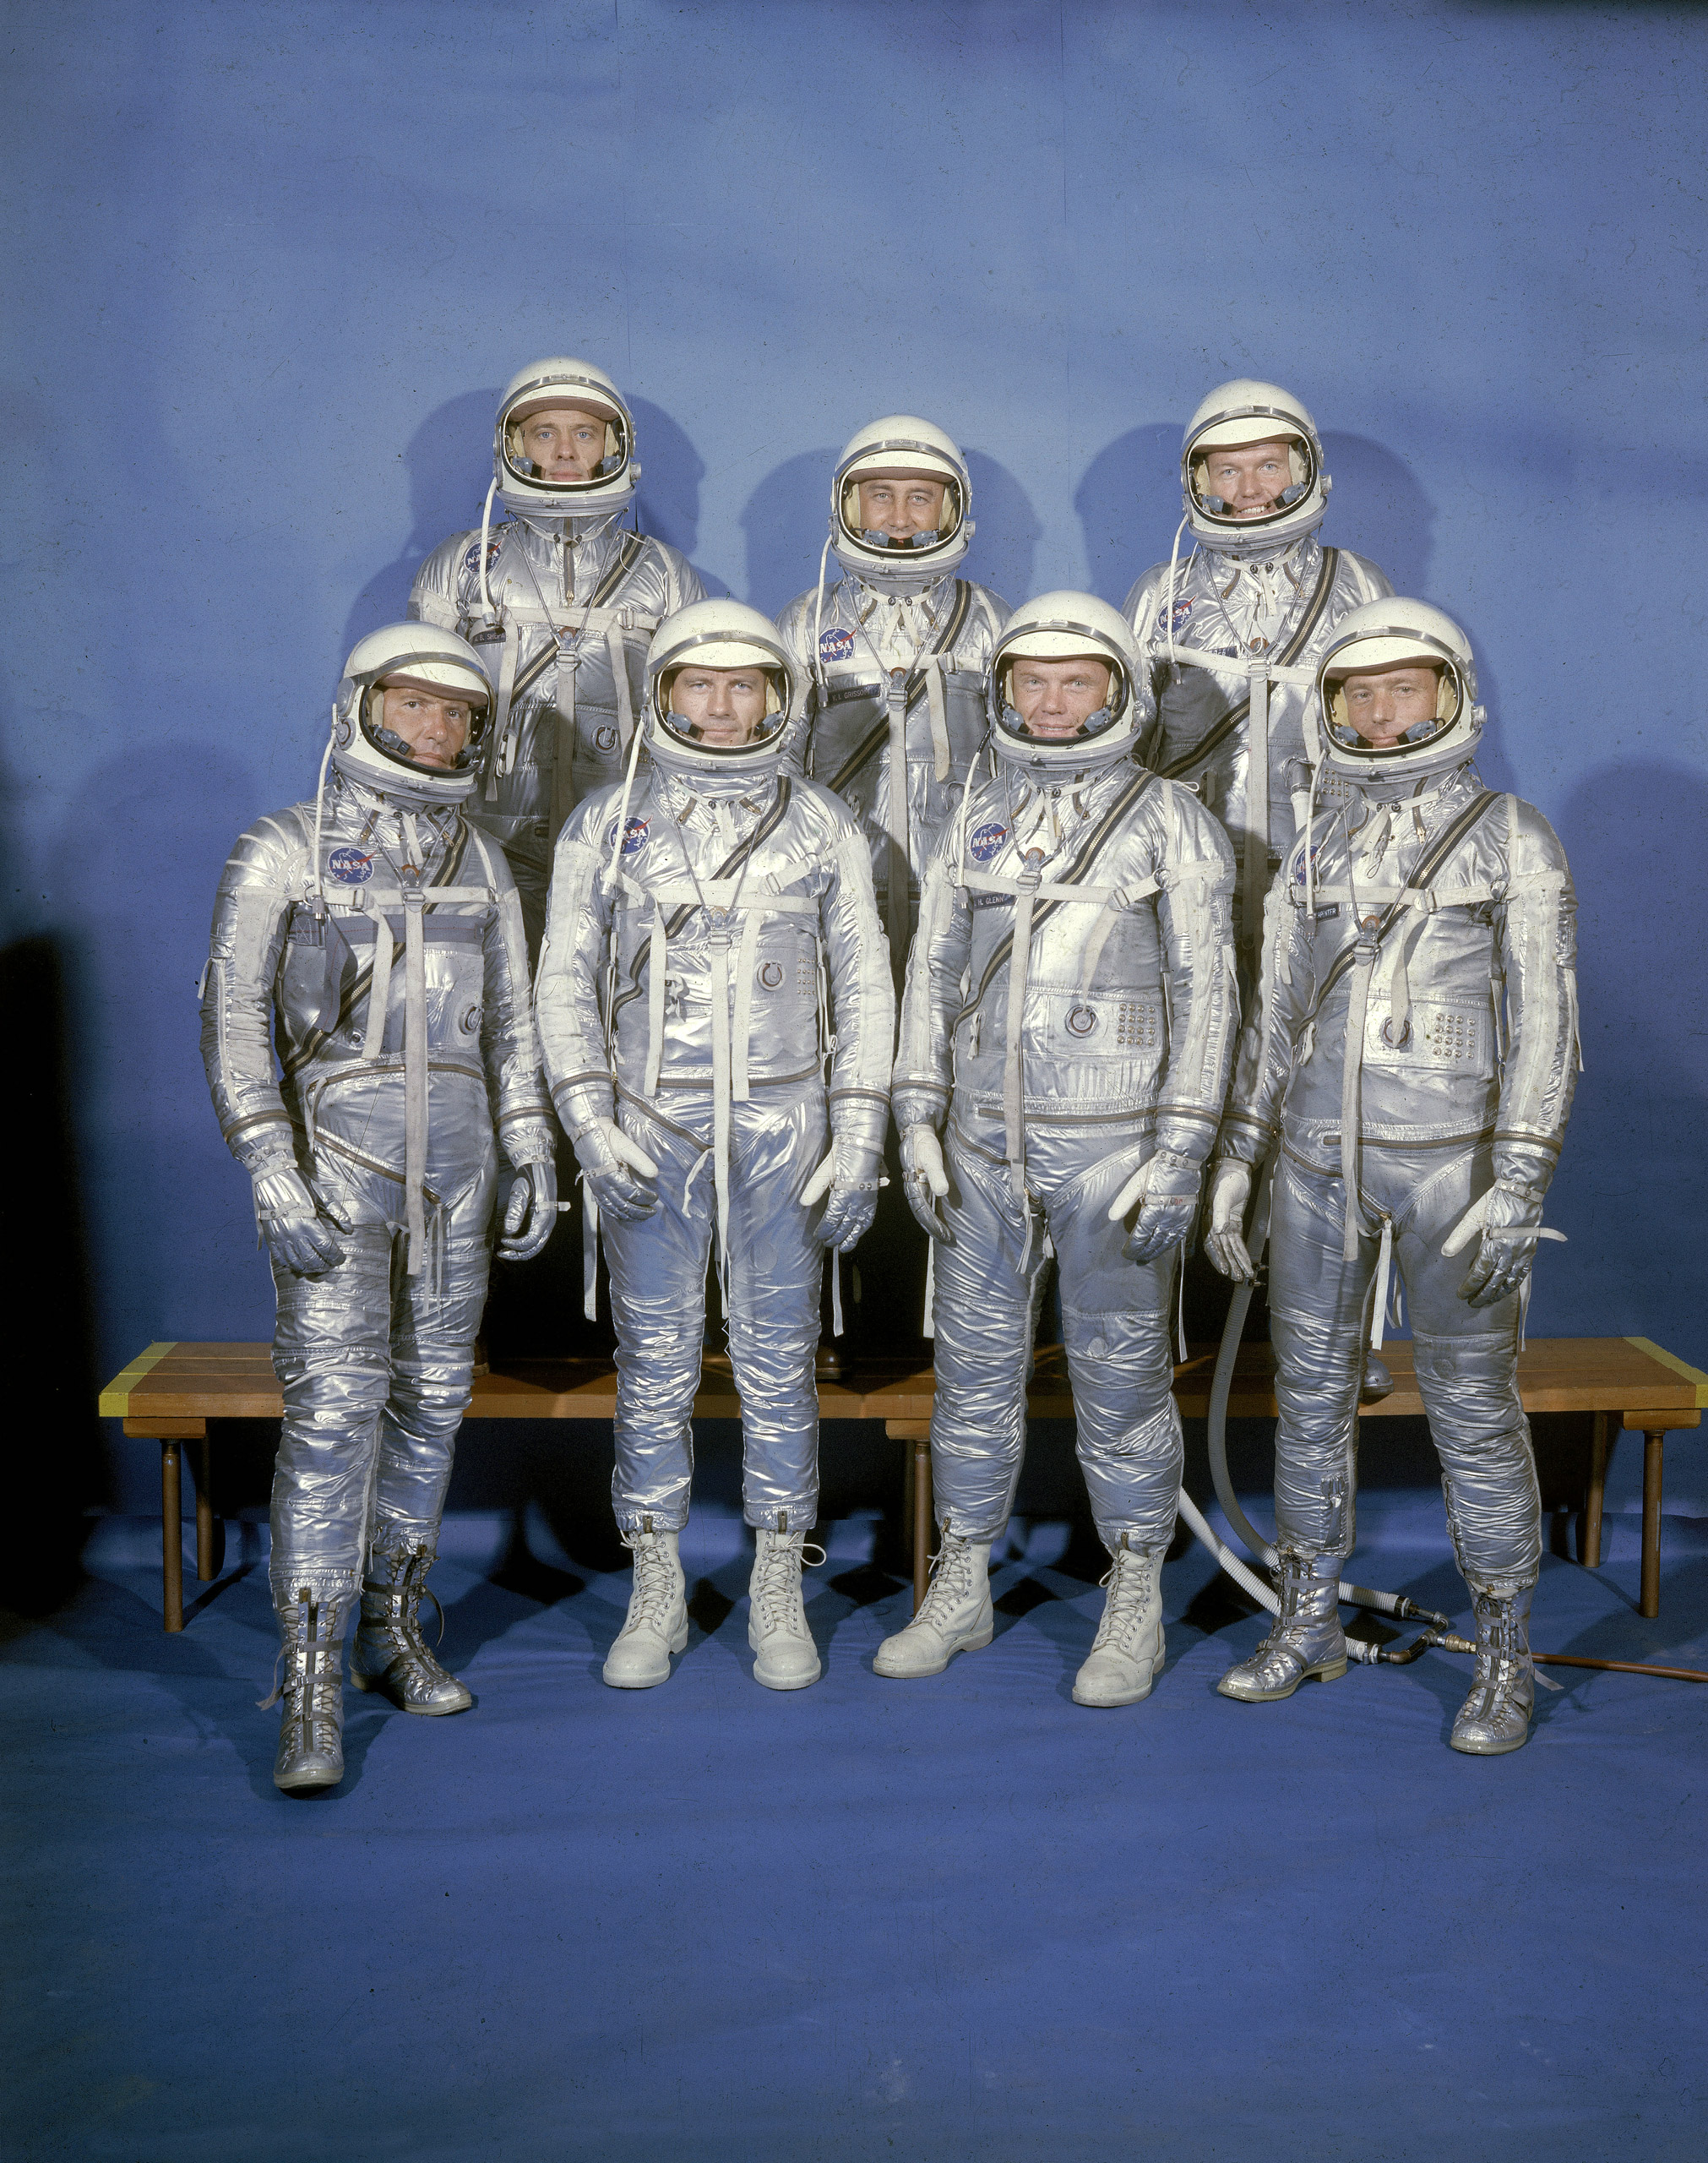 Don a faux pressure suit and pay tribute to the Project Mercury astronauts (clockwise from top left): Alan Shepard, Virgil Grissom, Leroy Cooper, Malcolm Carpenter, John Glenn, Donald Slayton and Walter Schirra, 1959.